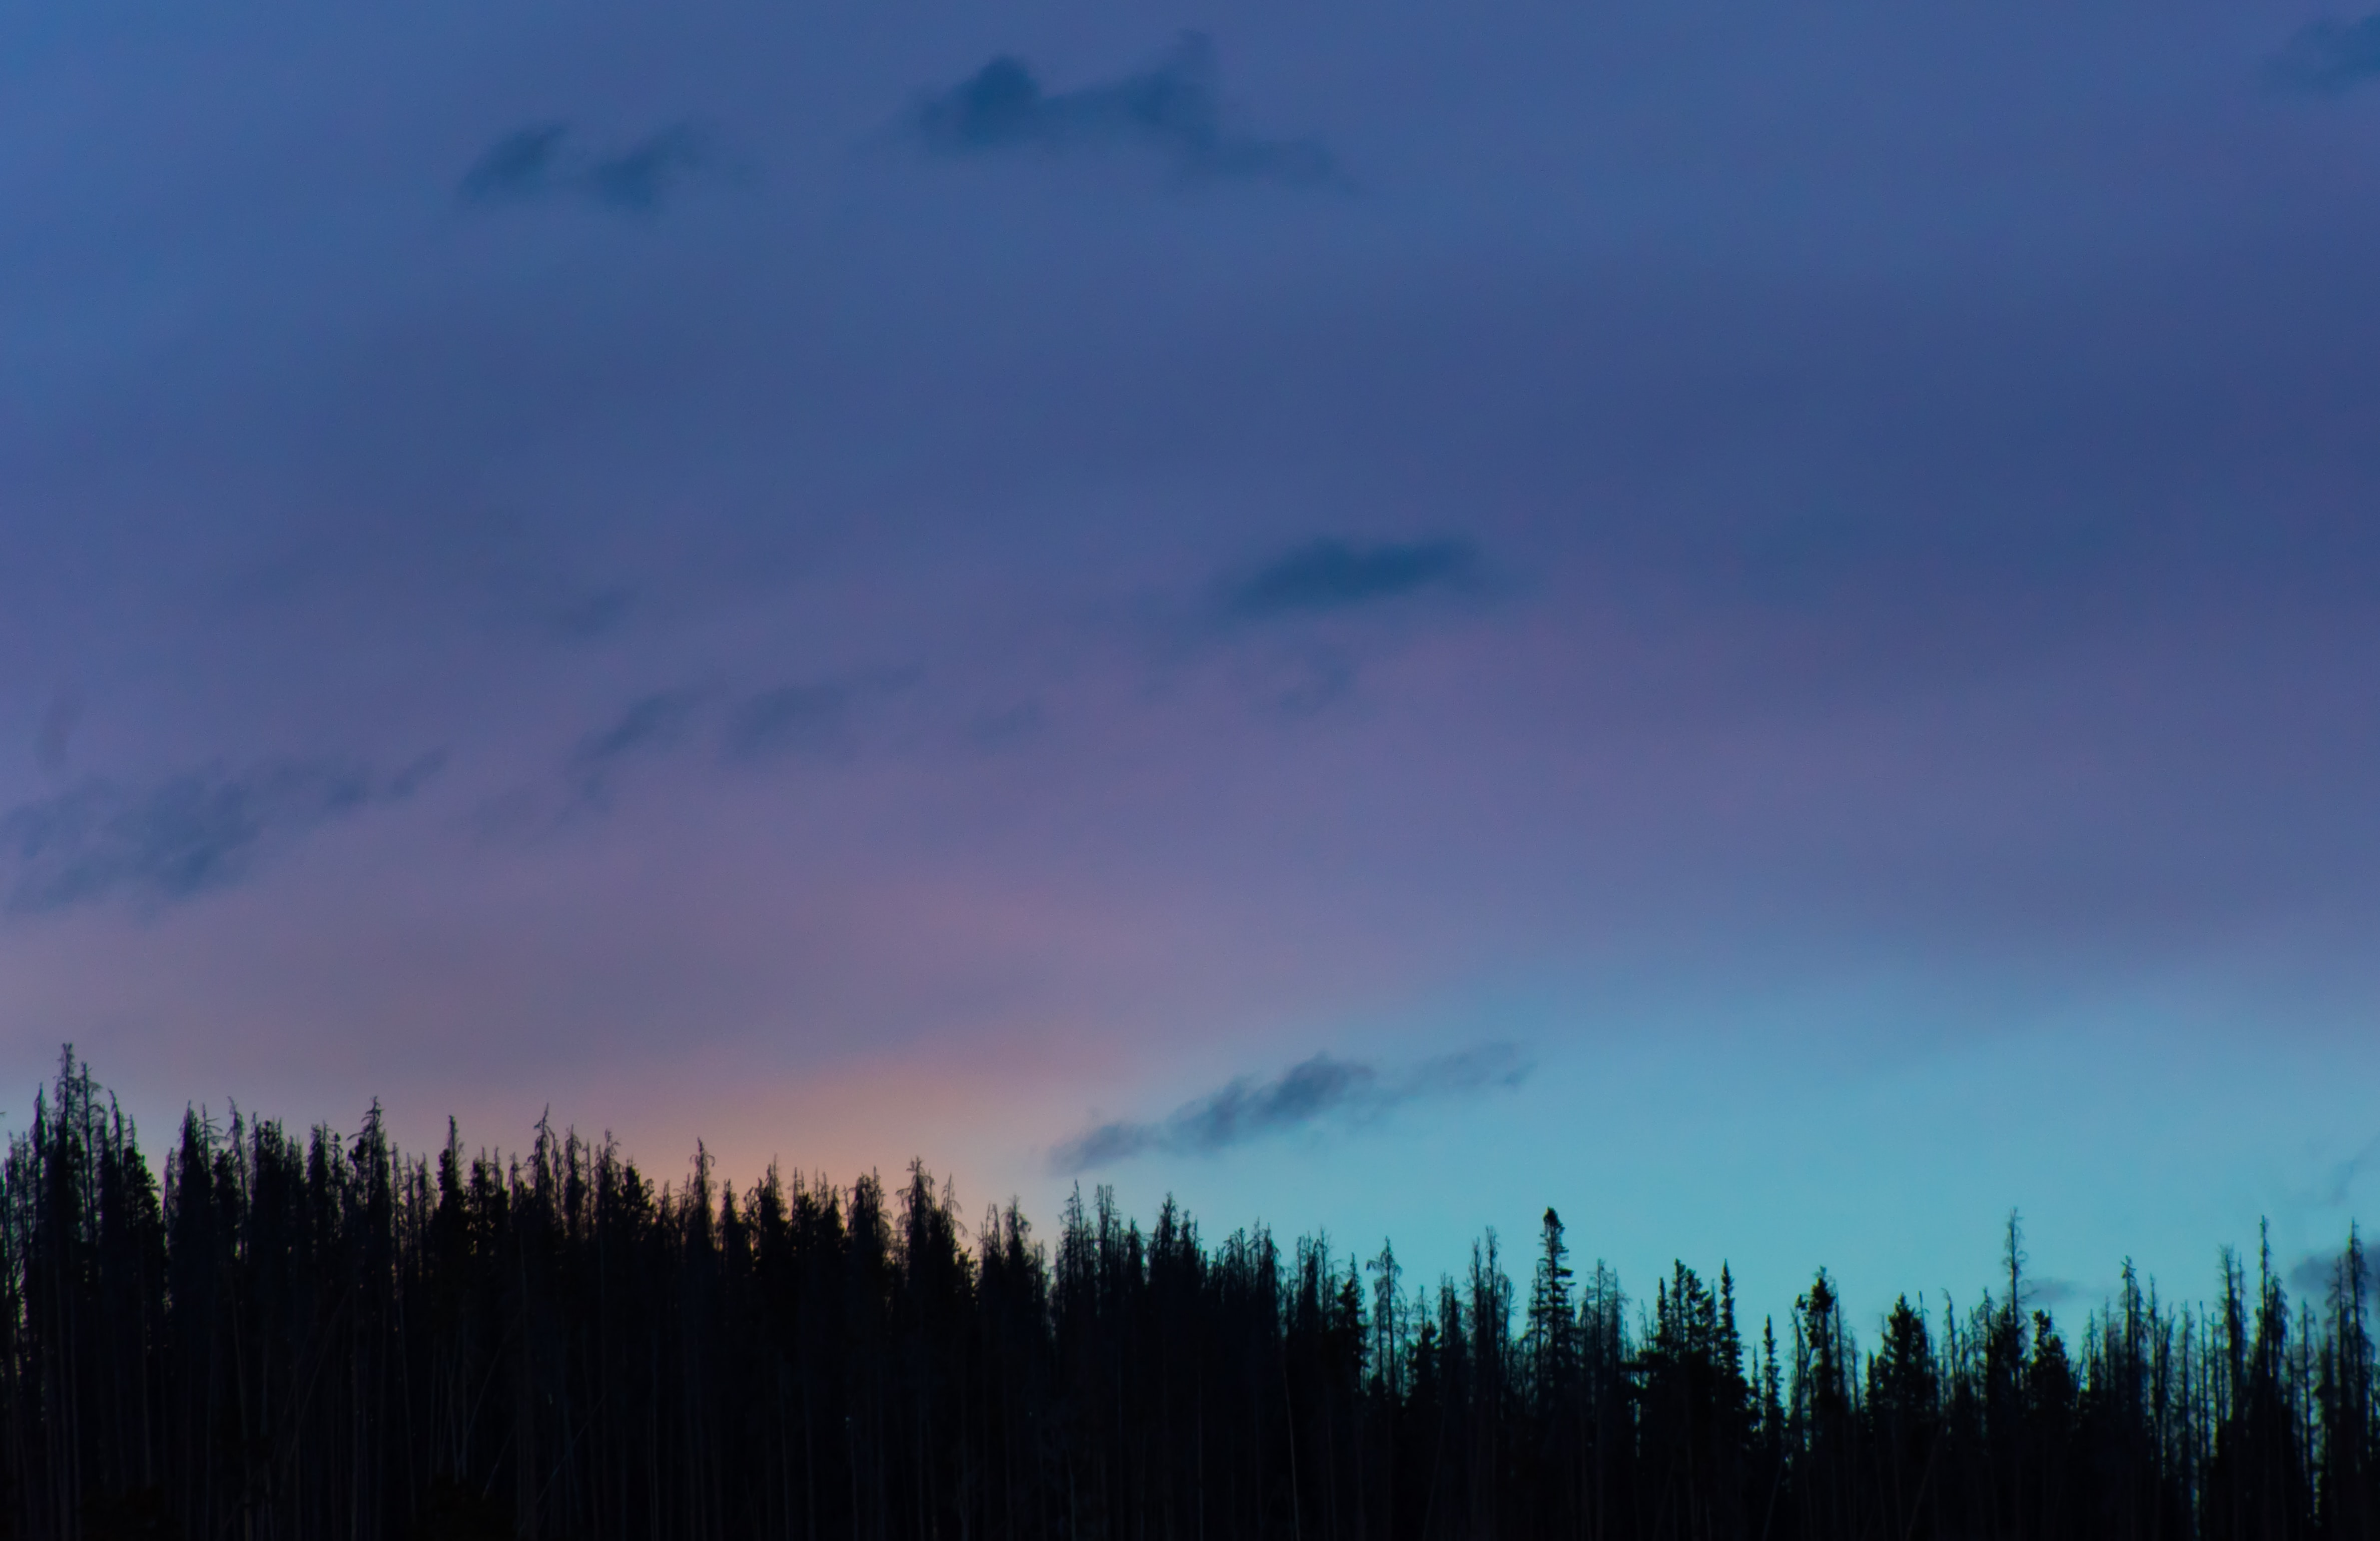 Colorful evening sky over a forest in Silverthorne